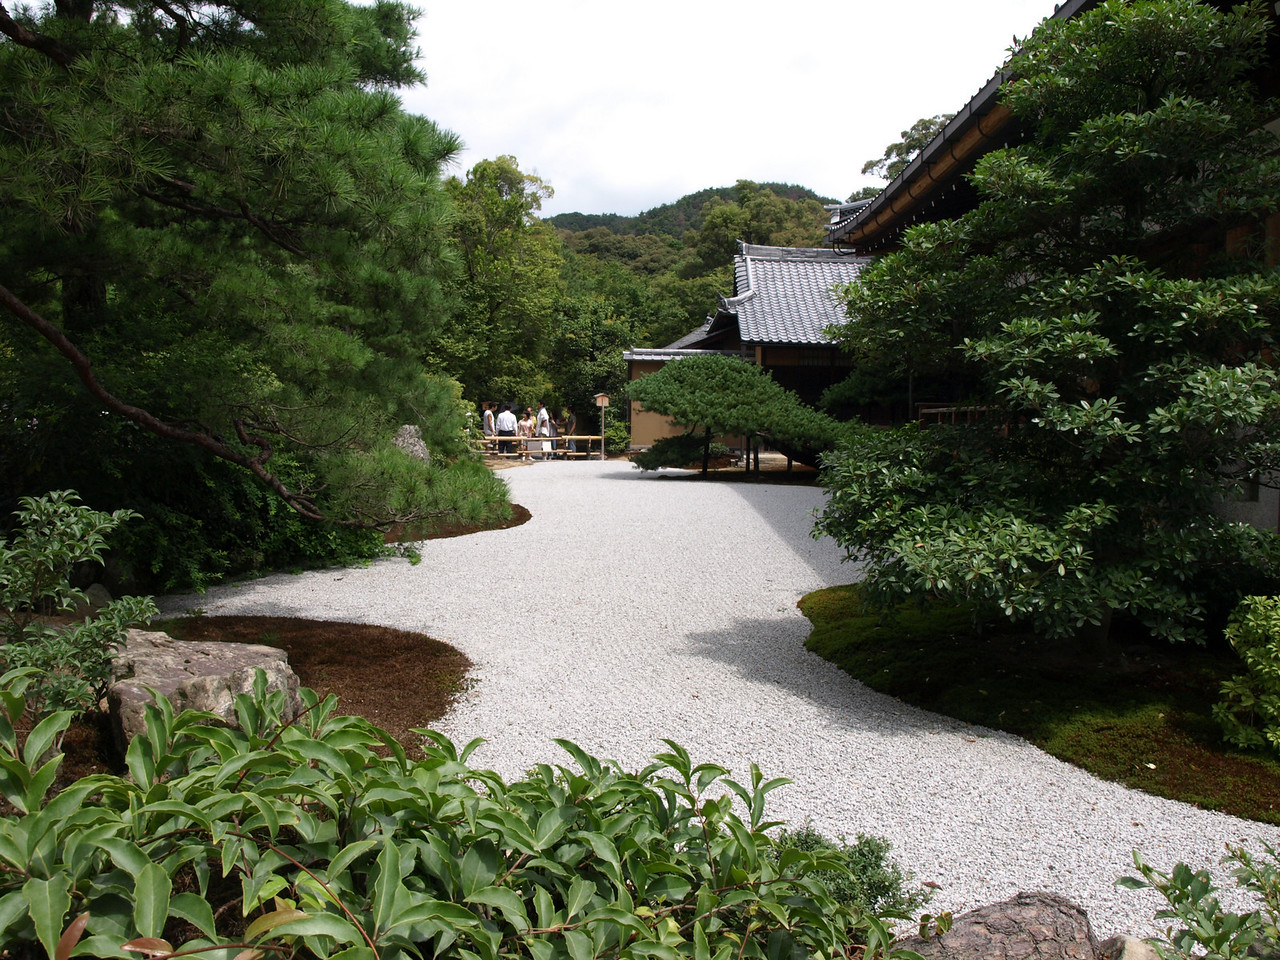 Here is an example of Karesansui, a dry landscape garden. Patterns are raked into the sand which are said to promote peace and harmony in the viewer.